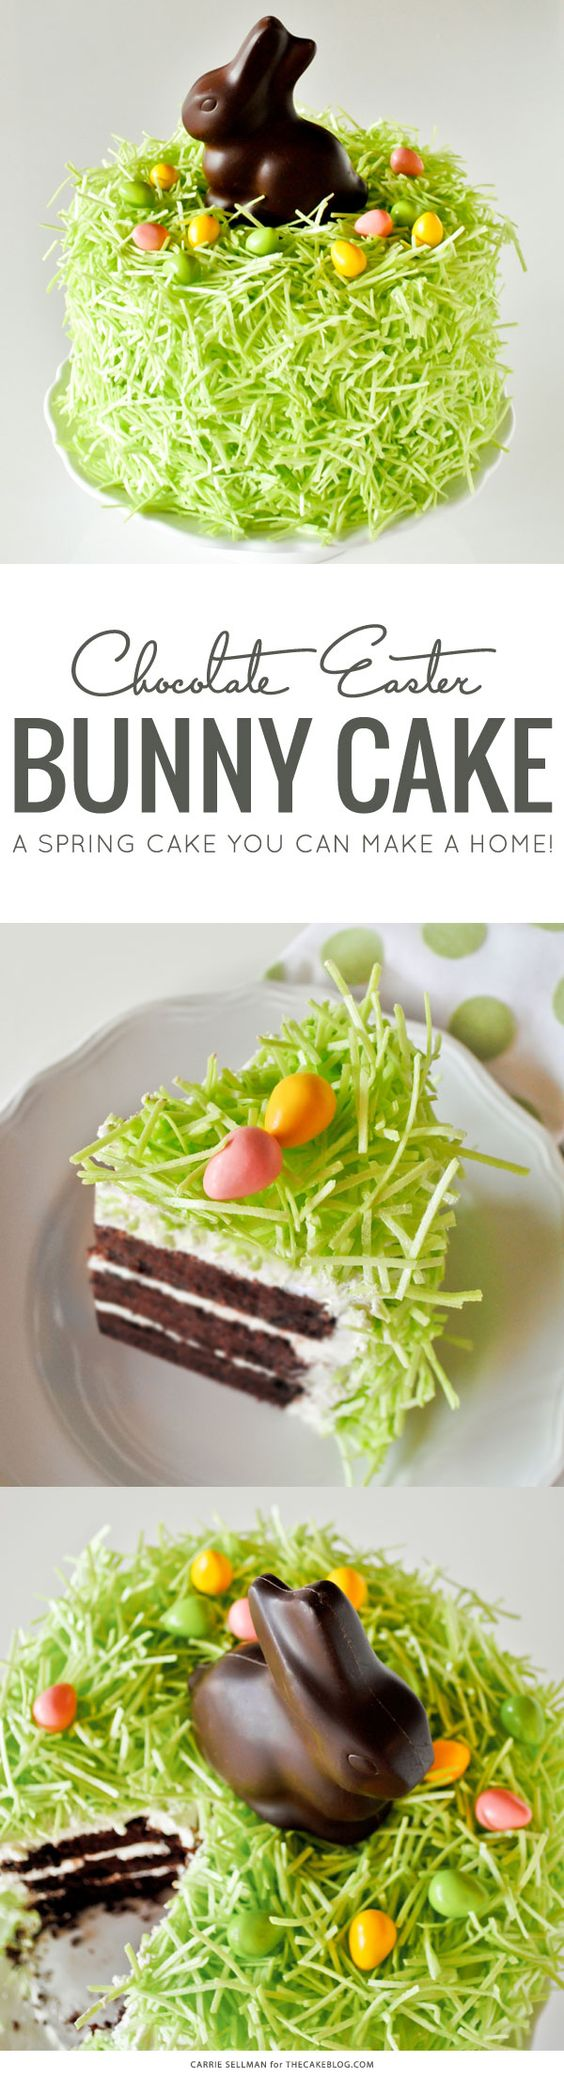 Chocolate Easter Bunny Cake.Fluffy green grass topped with a chocolate Easter bunny and candy eggs. Simply adorable! #Easter #Food #Cake #Bunny